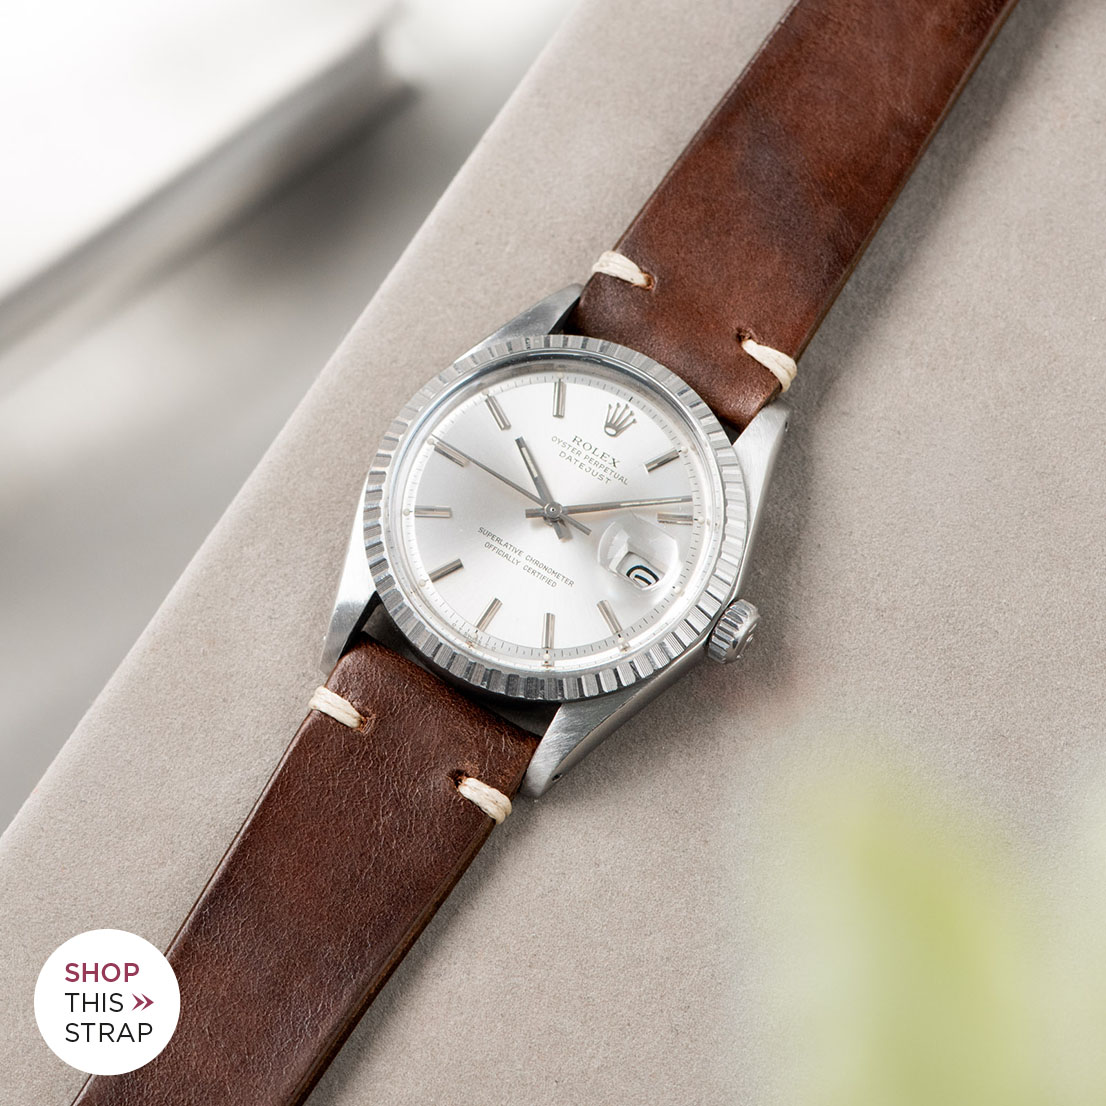 Bulang and sons_Strap Guide_Rolex Datejust Silverdial 1601 1603 1600 1630_LUMBERJACK BROWN LEATHER WATCH STRAP